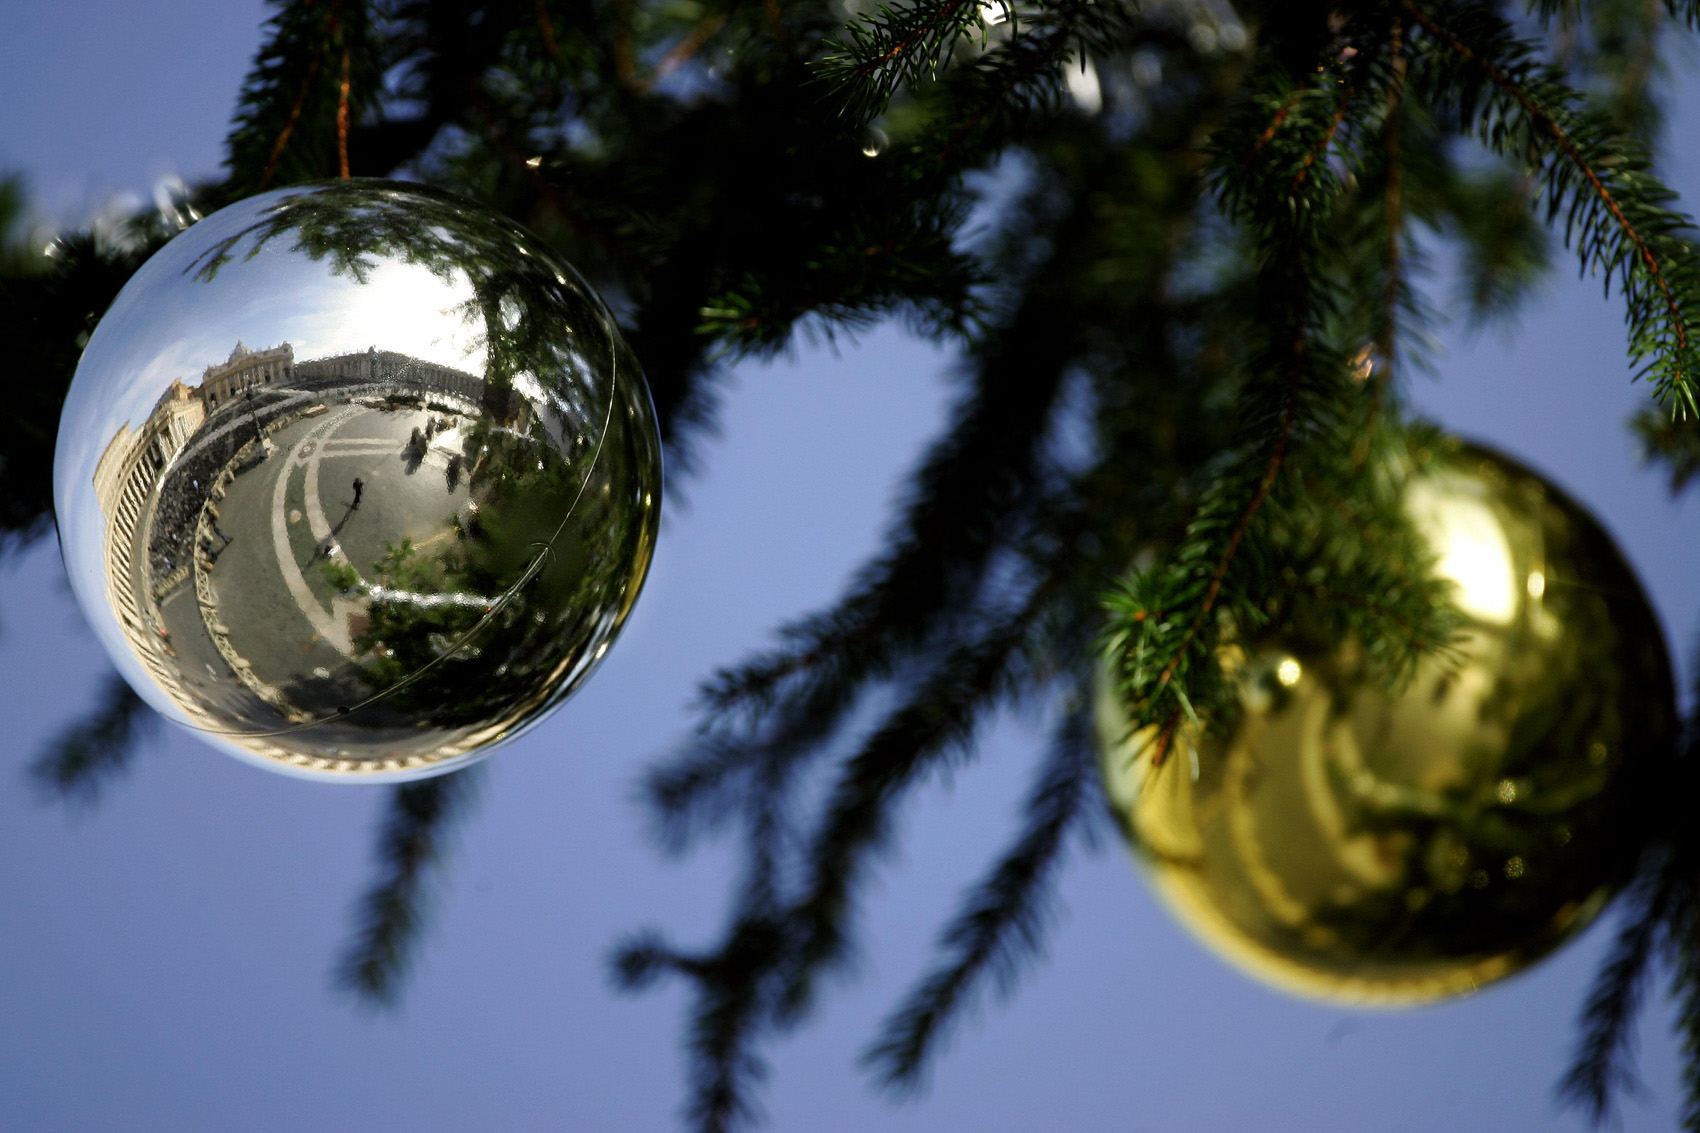 REFLECTION OF ST. PETER'S BASILICA SEEN ON CHRISTMAS ORNAMENT